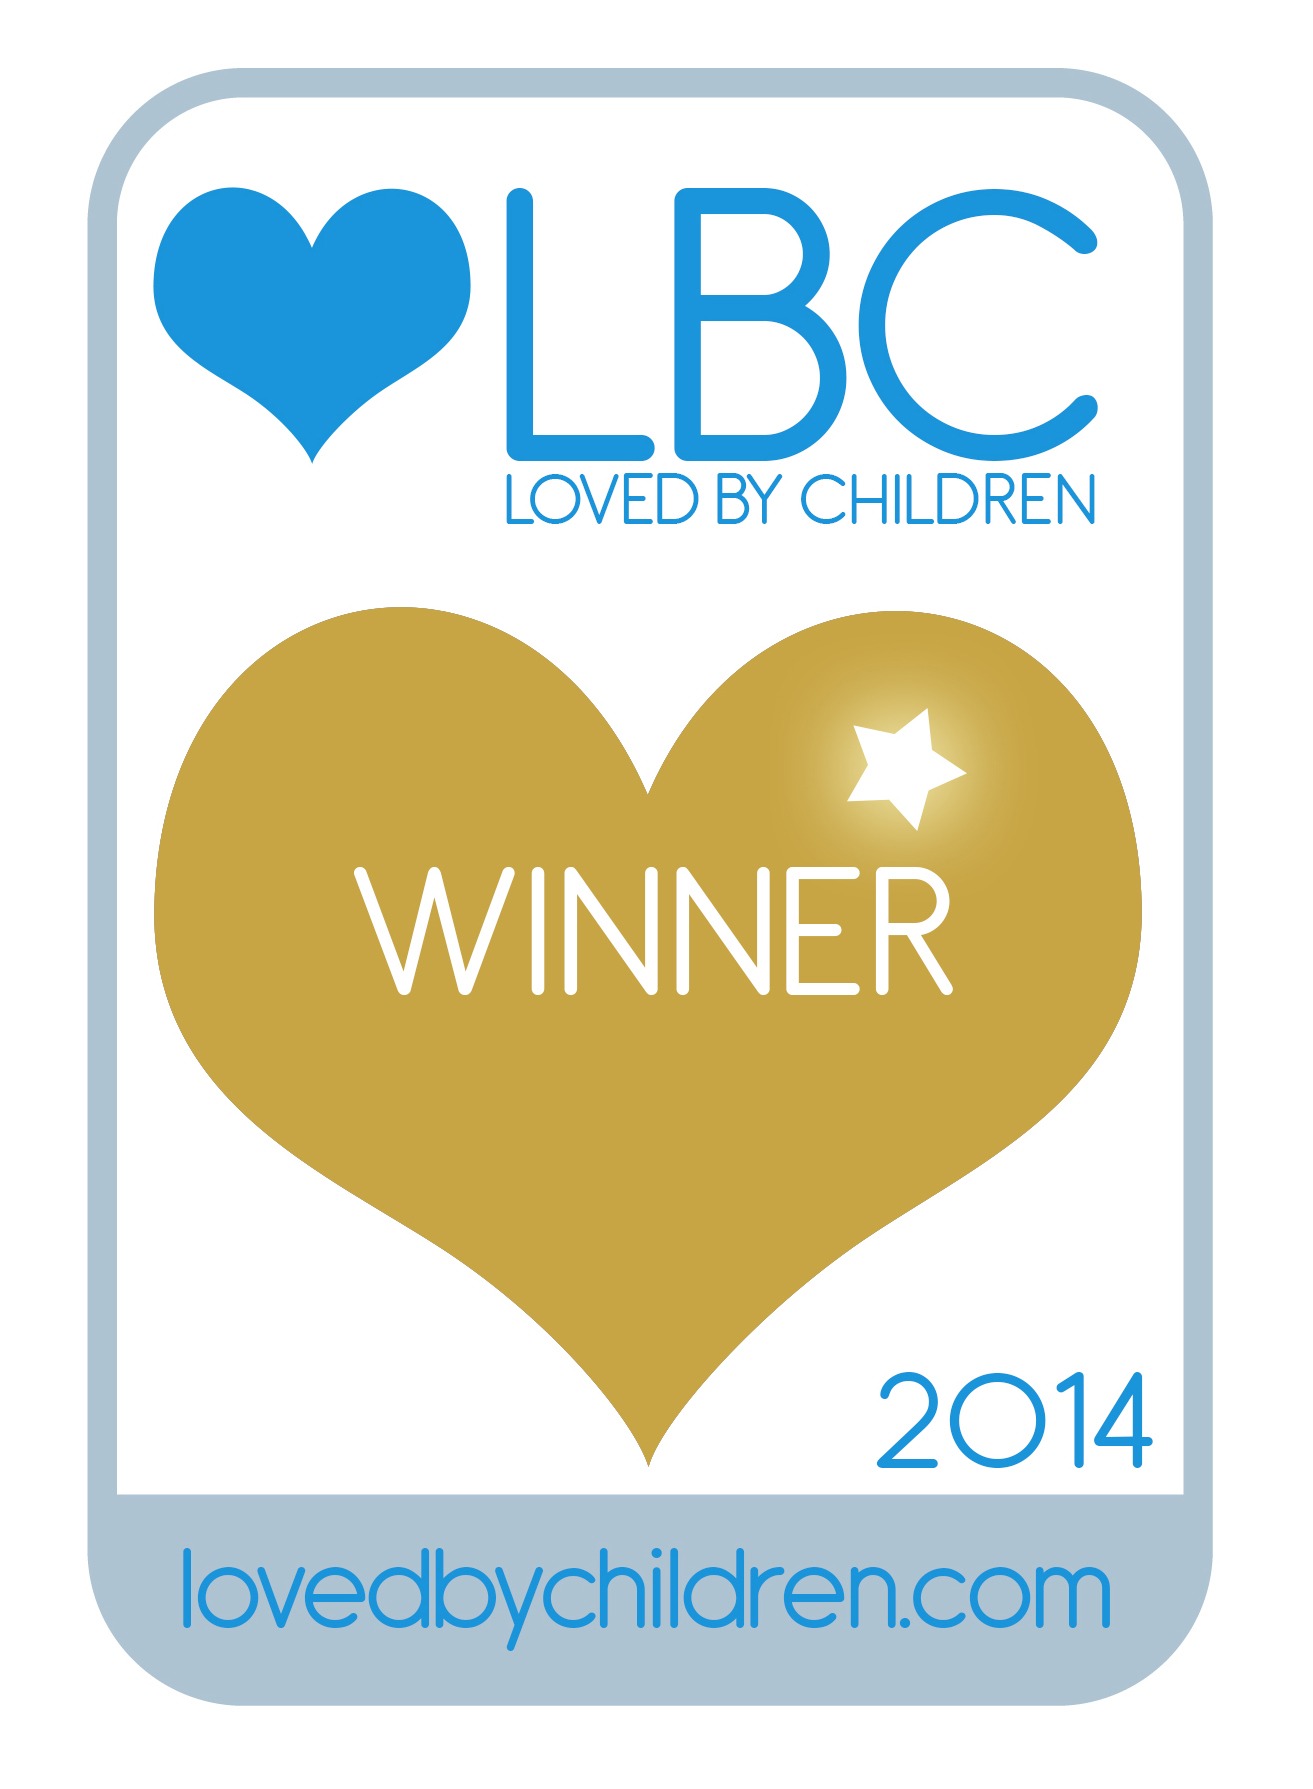 loved by children award